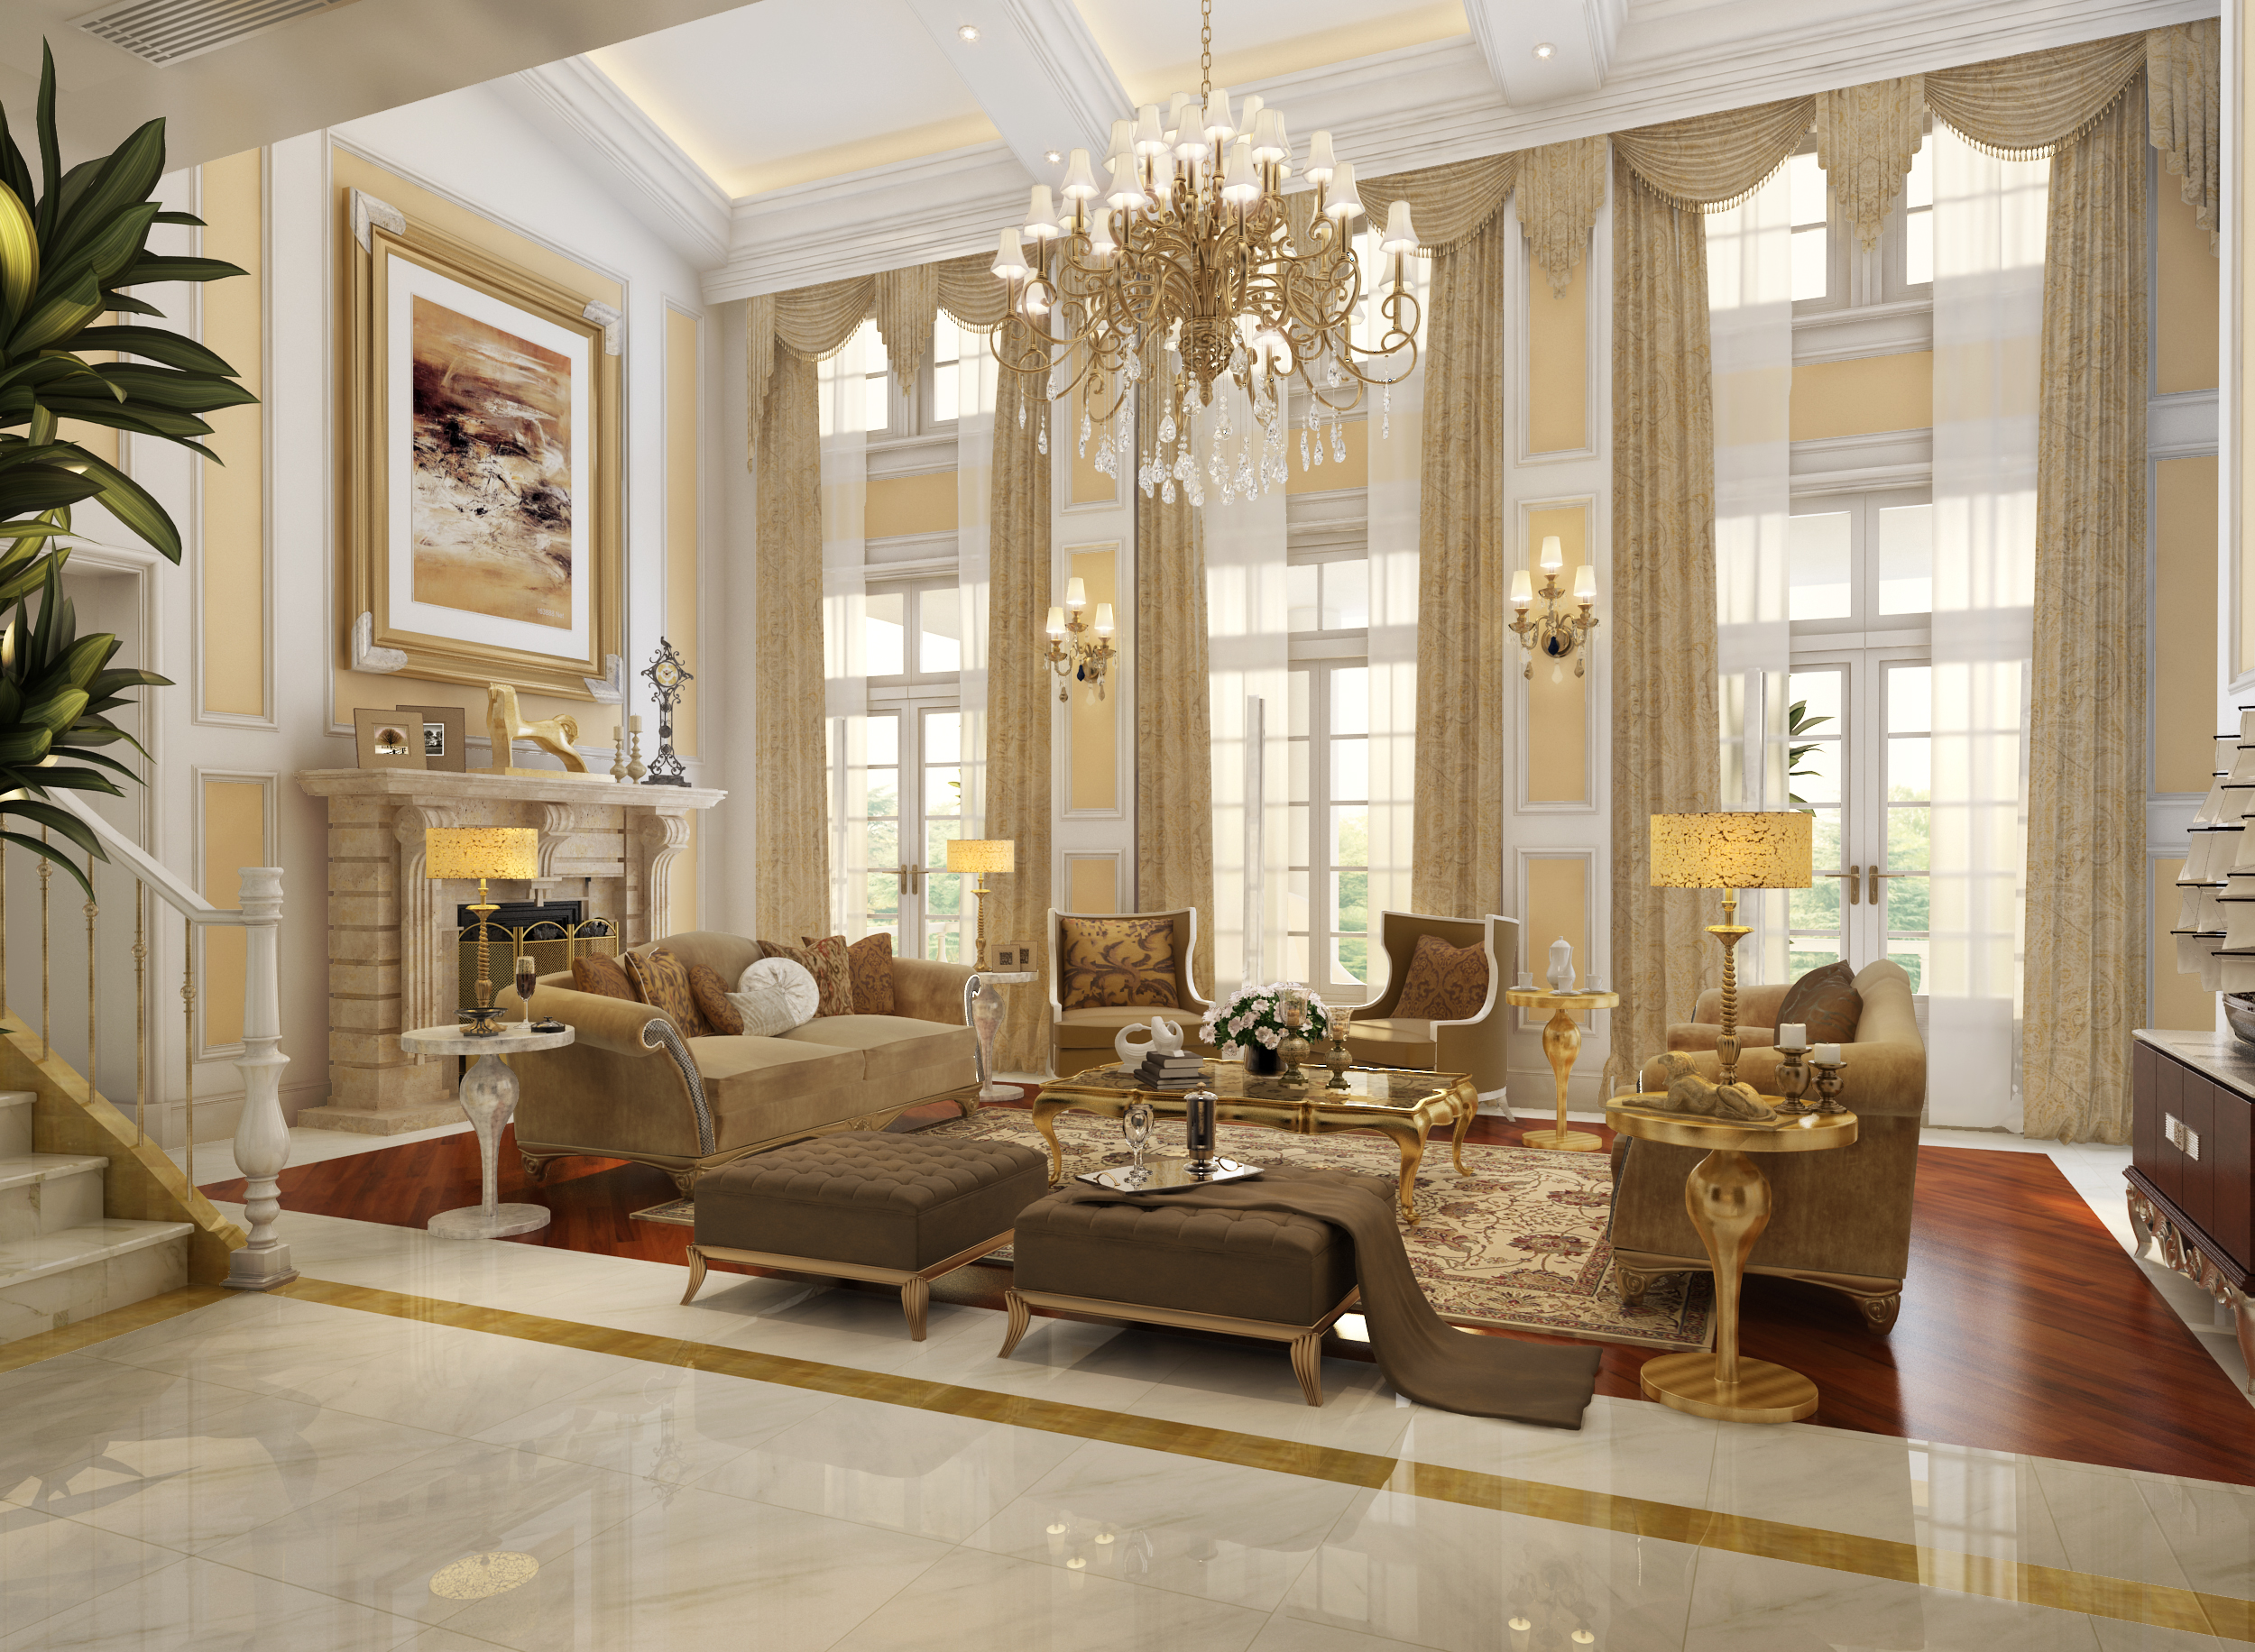 Luxury Victorian Living Rom With Awesome Chandelier Brown Furniture Set Warm Fireplace Marble Ligh Floor And Long Curtains - Elegant Victorian Living Room